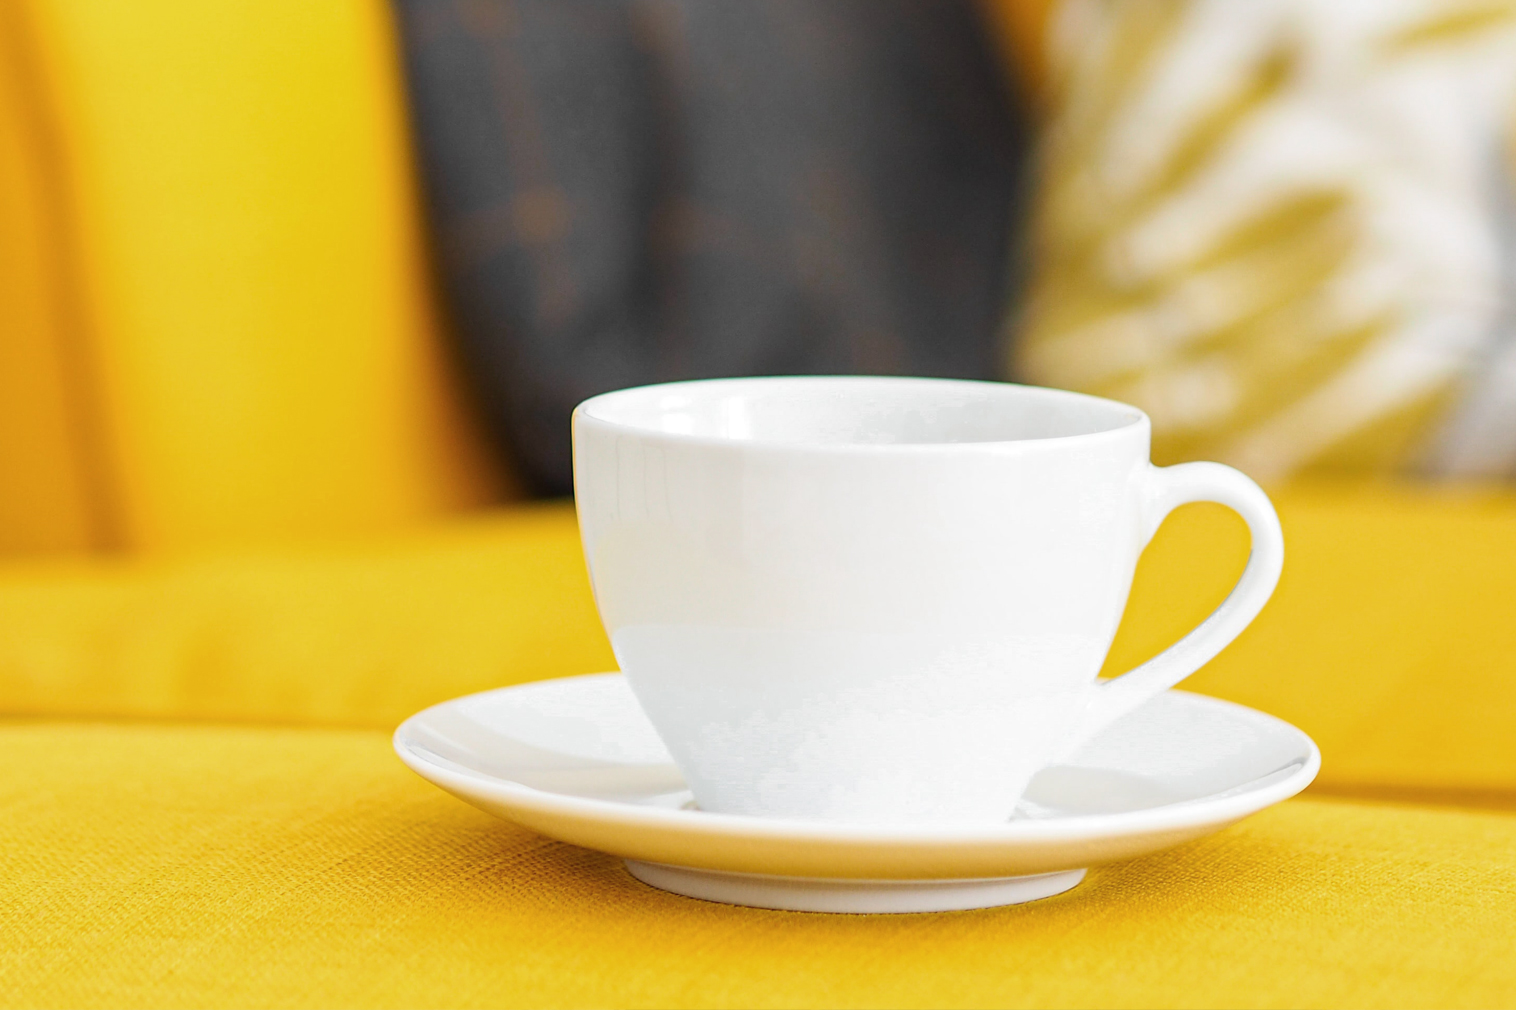 white coffee cup on yellow background